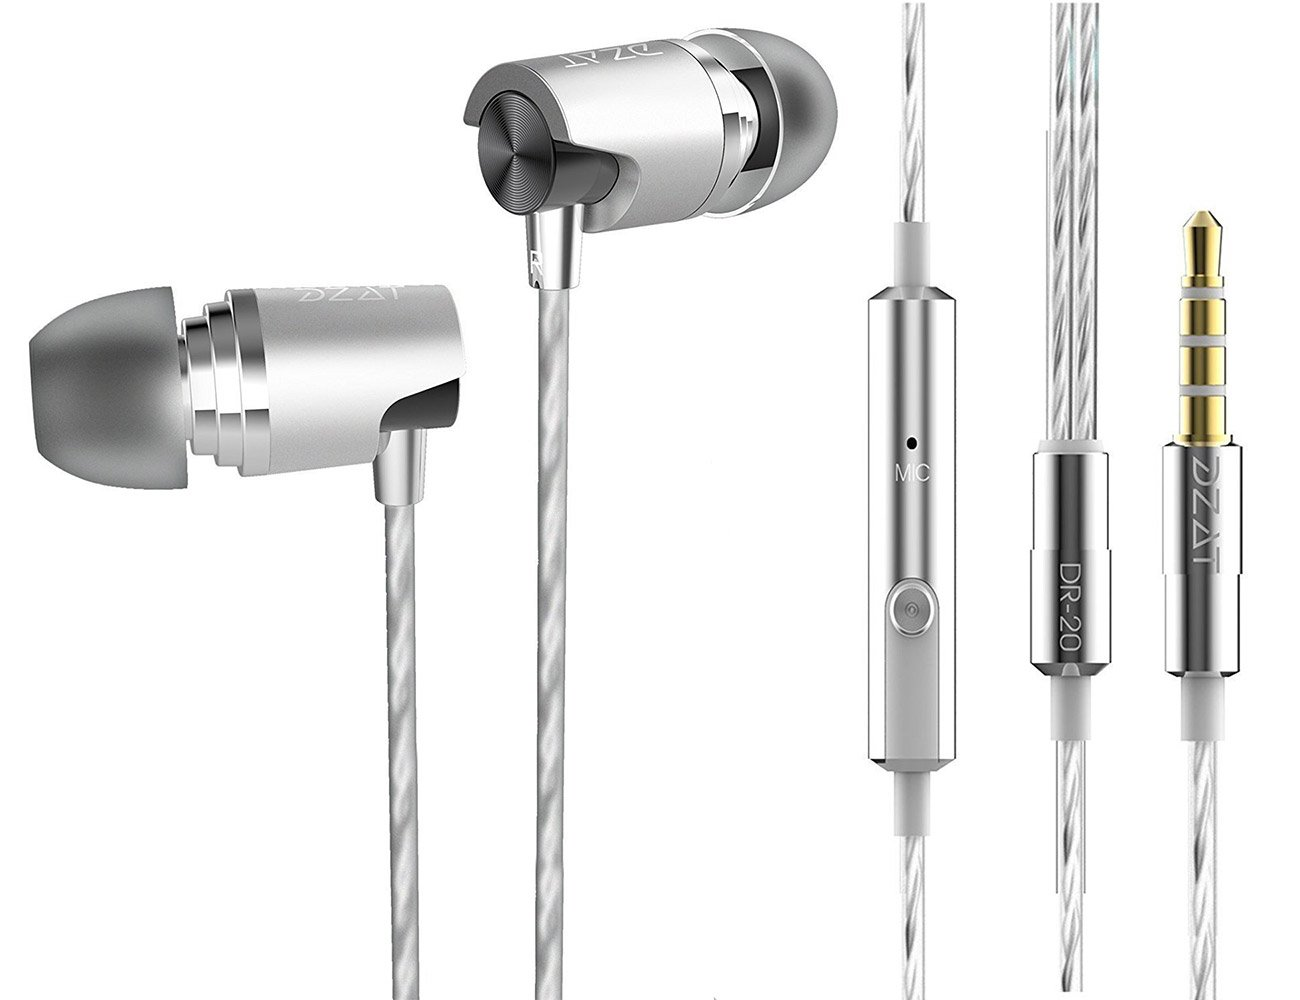 Headphones with Microphone, in Ear Headphones with Microphone Controller Noise Cancelling Earbuds DR-20 Black